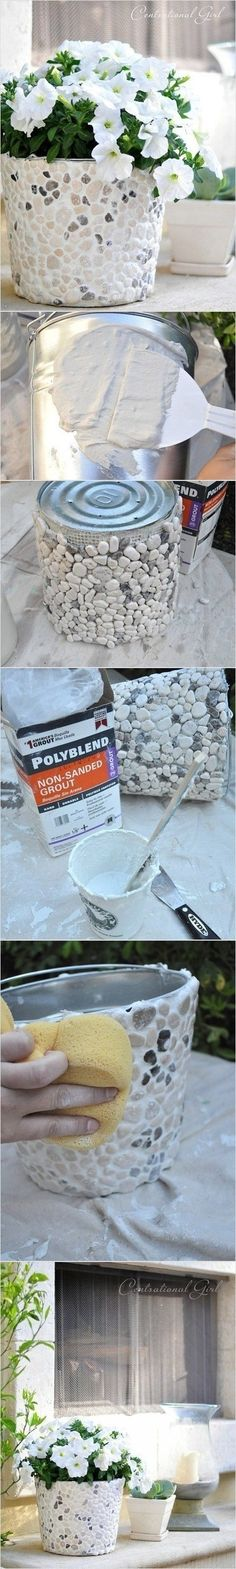 How to make your own stone flower pot by Jerry Klienfausty